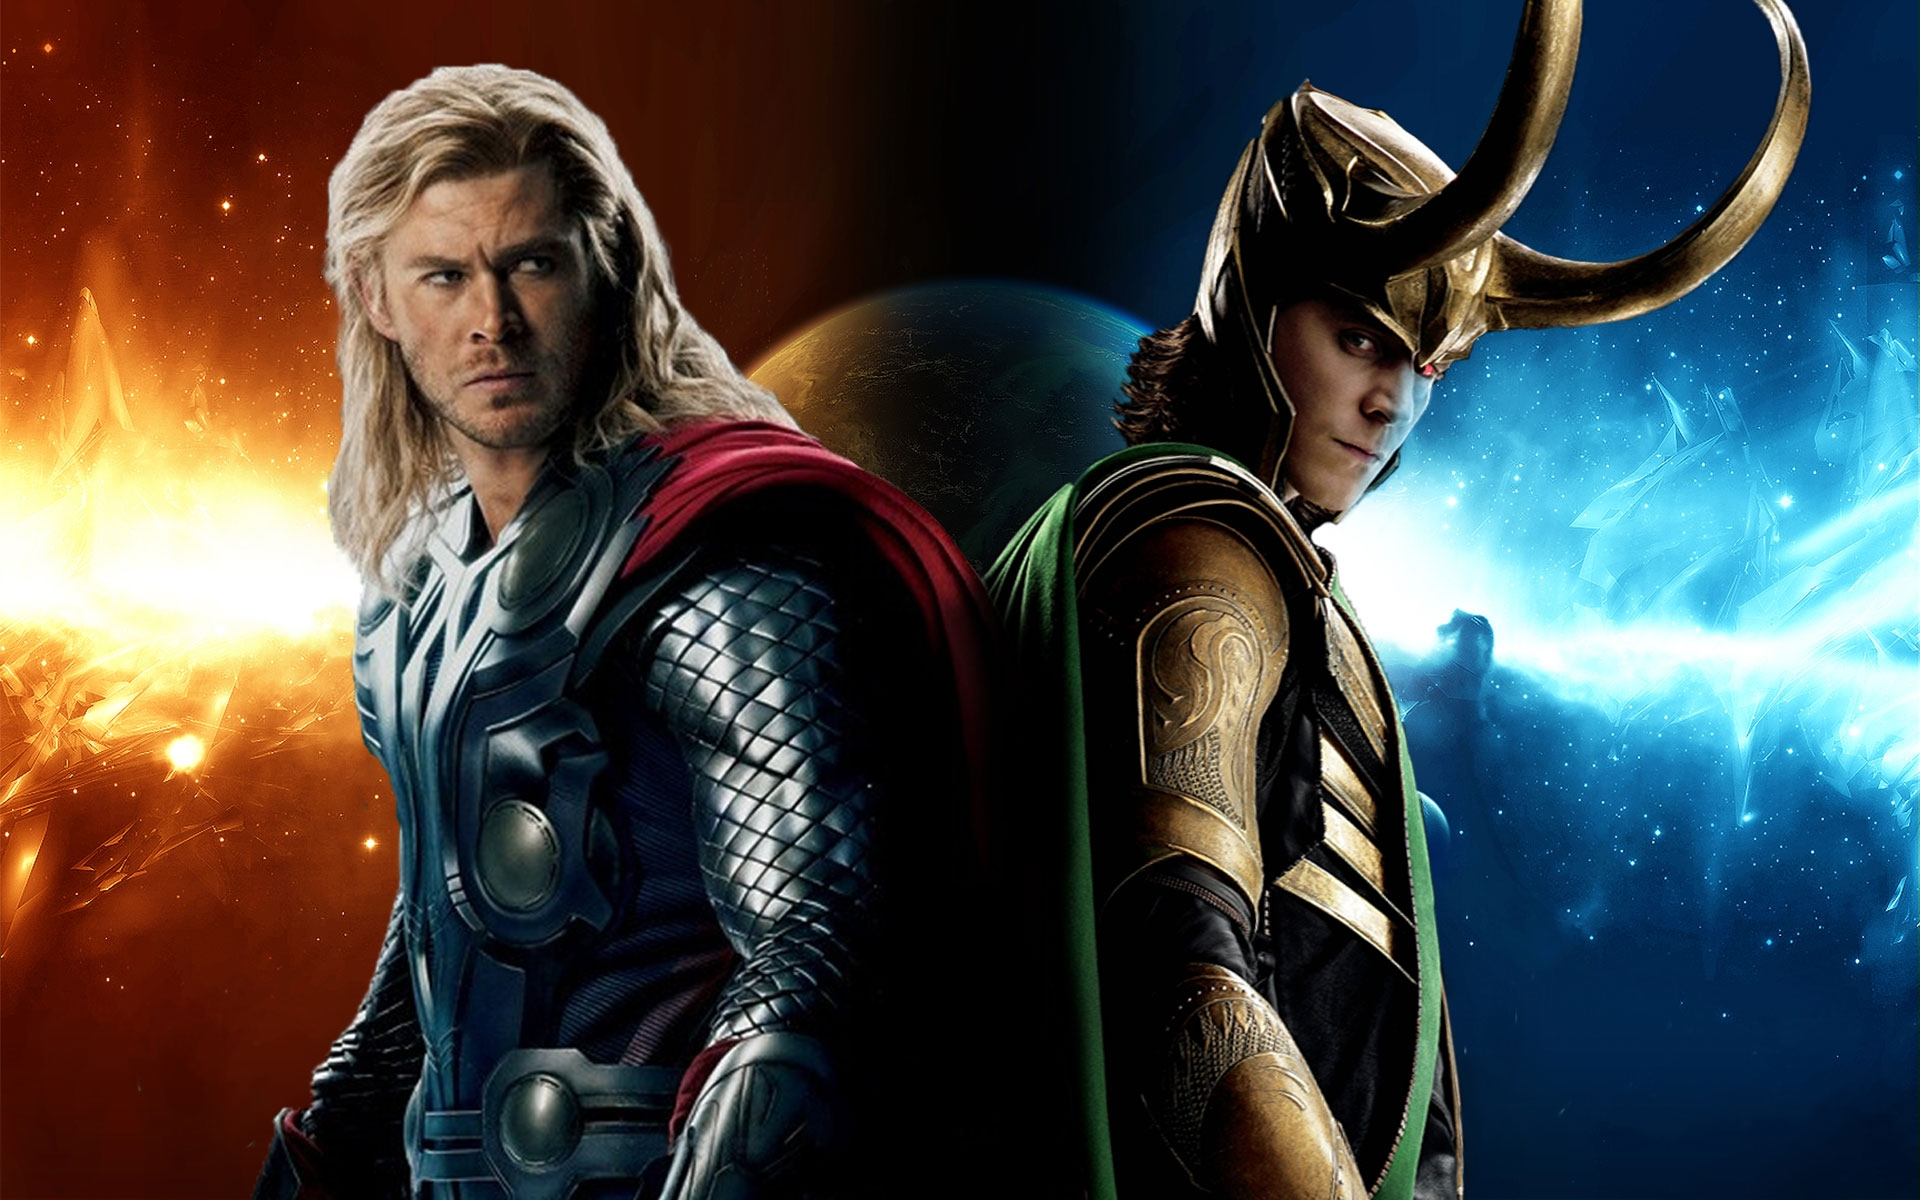 locked in a room with Thor and Loki - Personality Quiz